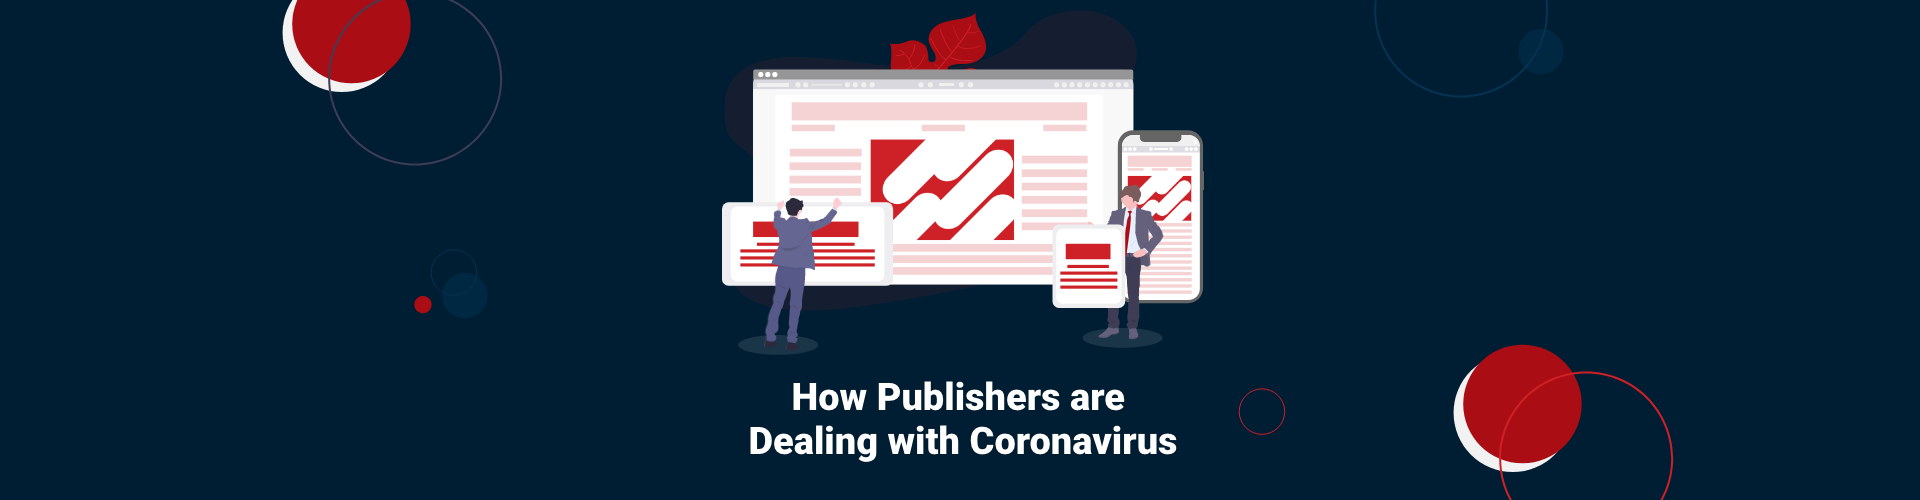 Header image of How Publishers are Dealing with Coronavirus